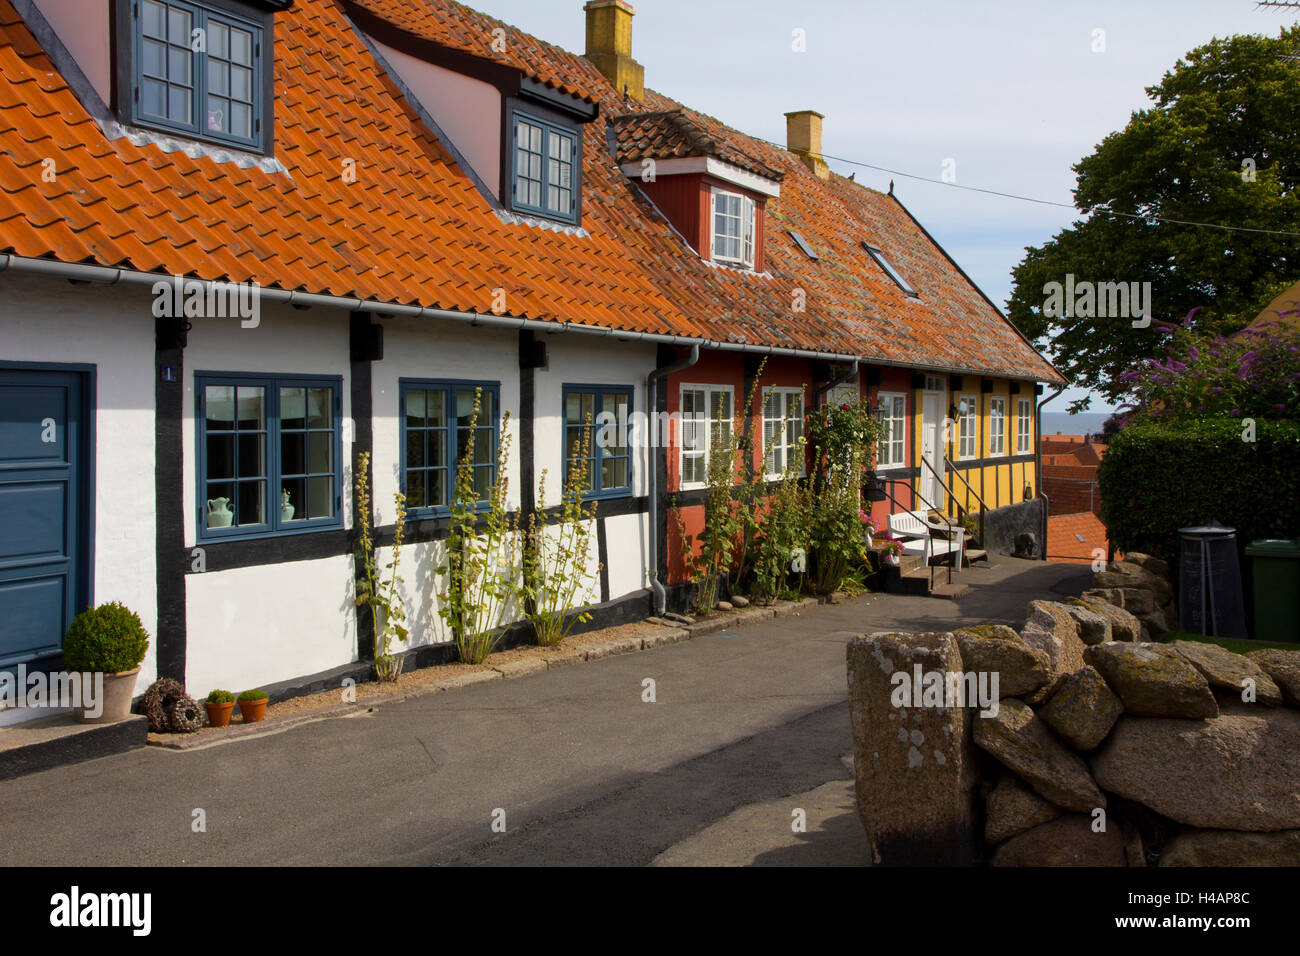 Colorful tiled-roof shops and houses characterize the coastal village of Svaneke on the Danish island of Bornholm. Stock Photo